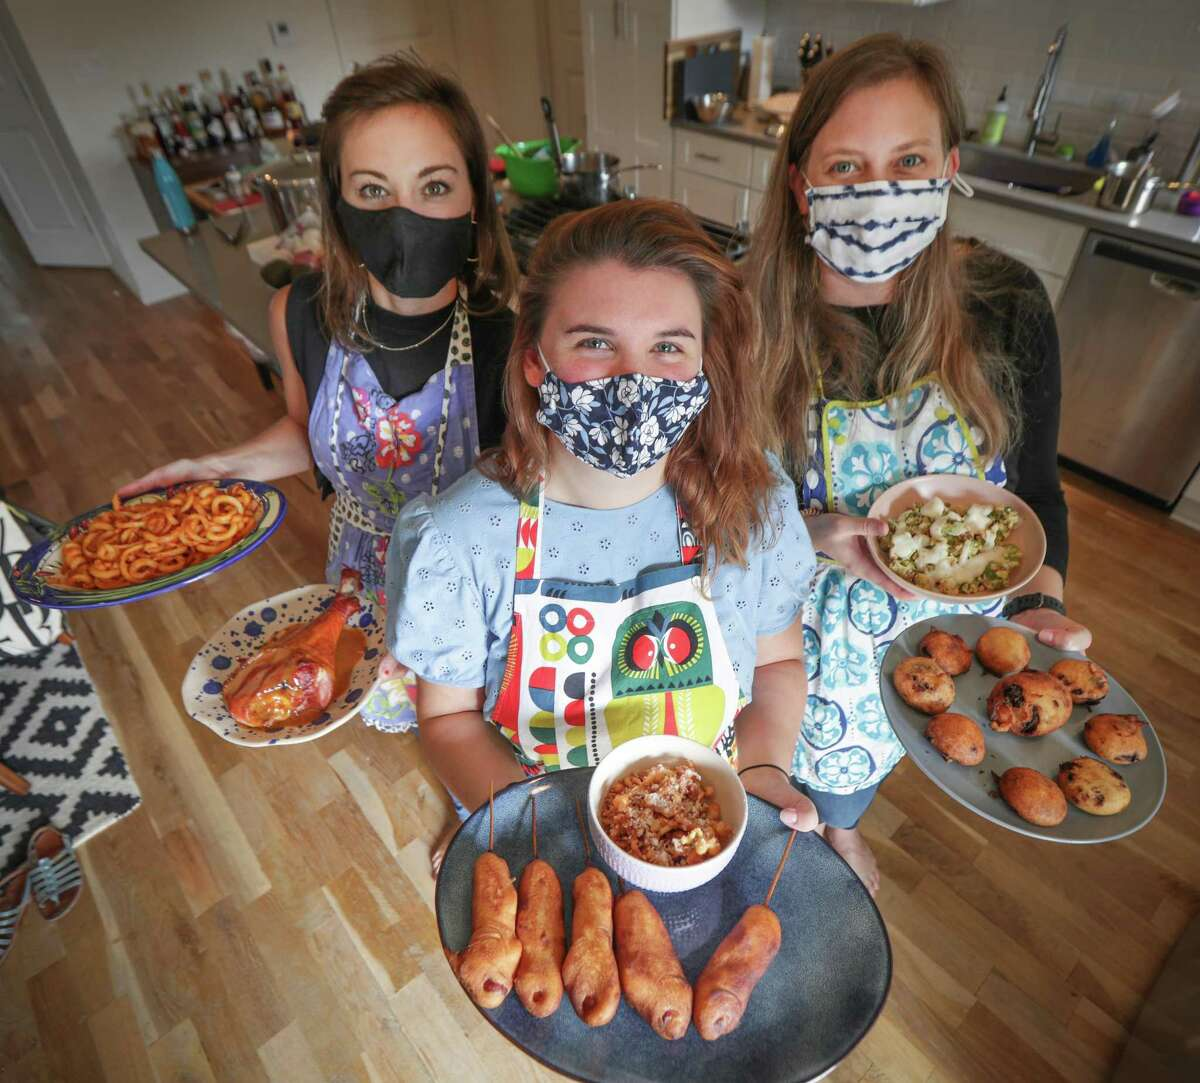 Caitlin Griffith, from left, the Houston Chronicle's Emma Balter and Lauren McDowell made State Fair food at McDowell's home.